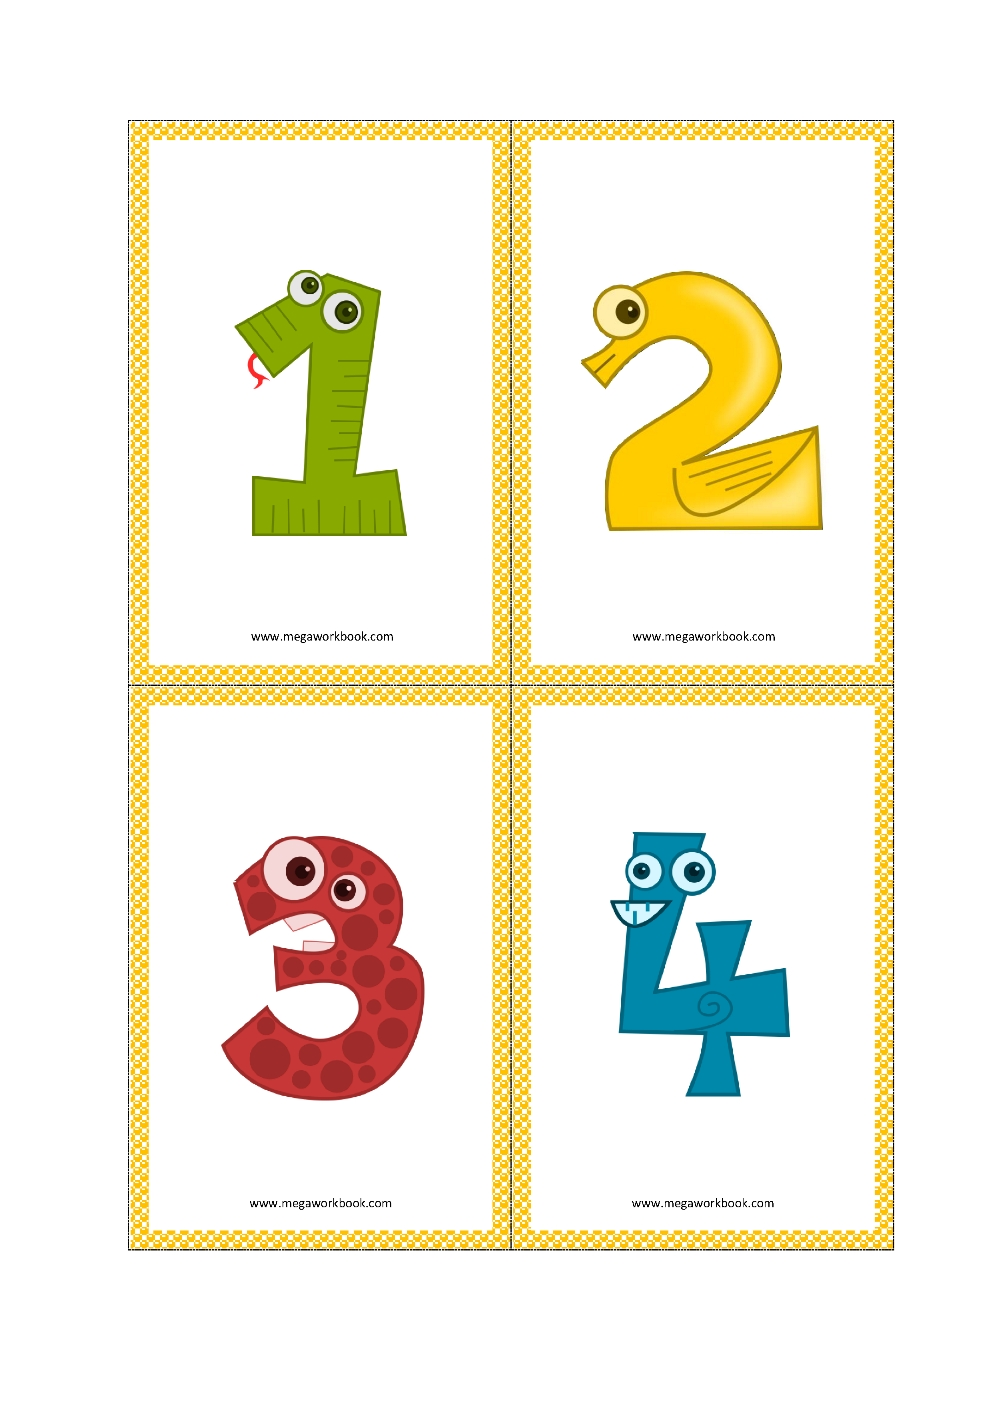 Number Flashcards - Number Flashcards Printable Free - (1 To